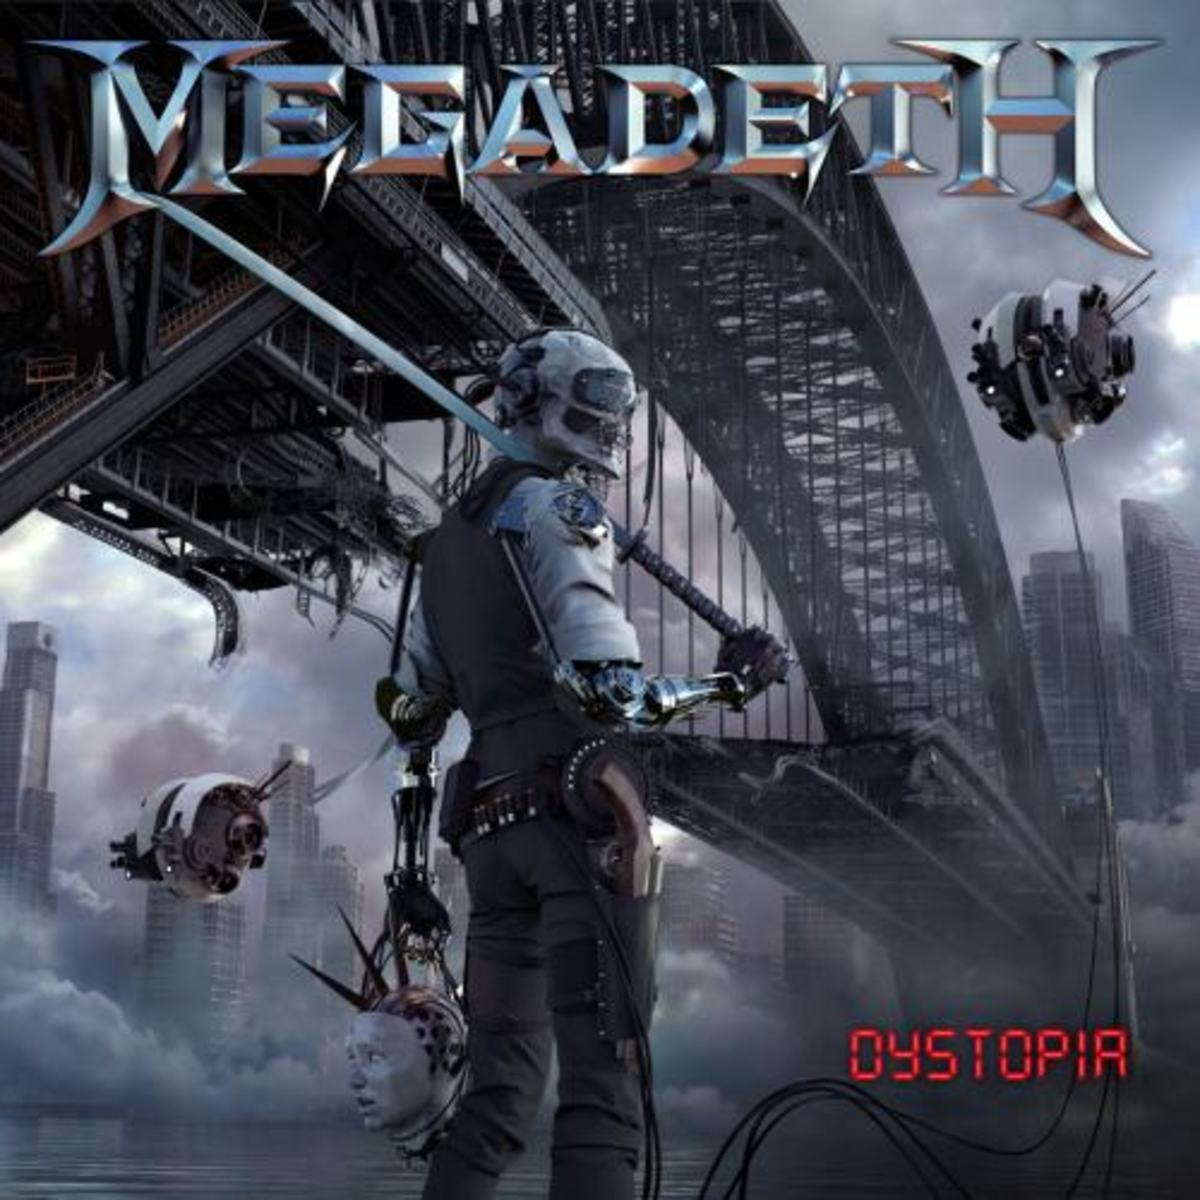 how-does-megadeth-rank-in-the-history-of-heavy-metal-bands